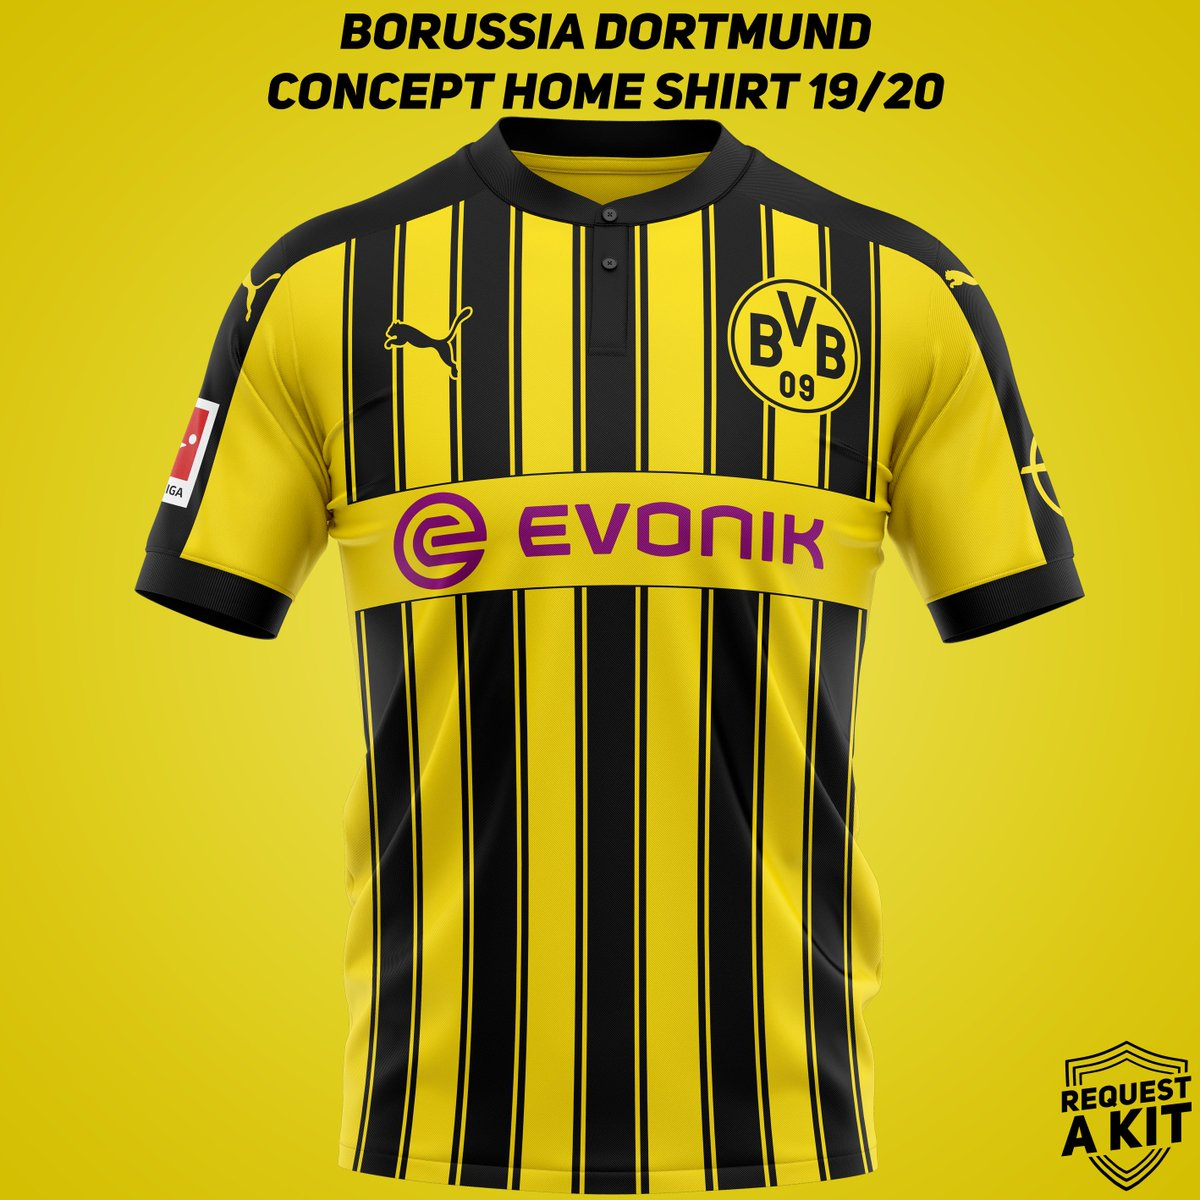 Request A Kit On Twitter Borussia Dortmund Concept Home Away And Third Shirts 2019 20 Requested By Steinkelsson Bvb Borussia Dortmund Echteliebe Hejabvb Fm19 Wearethecommunity Download For Your Football Manager Save Here Https T Co